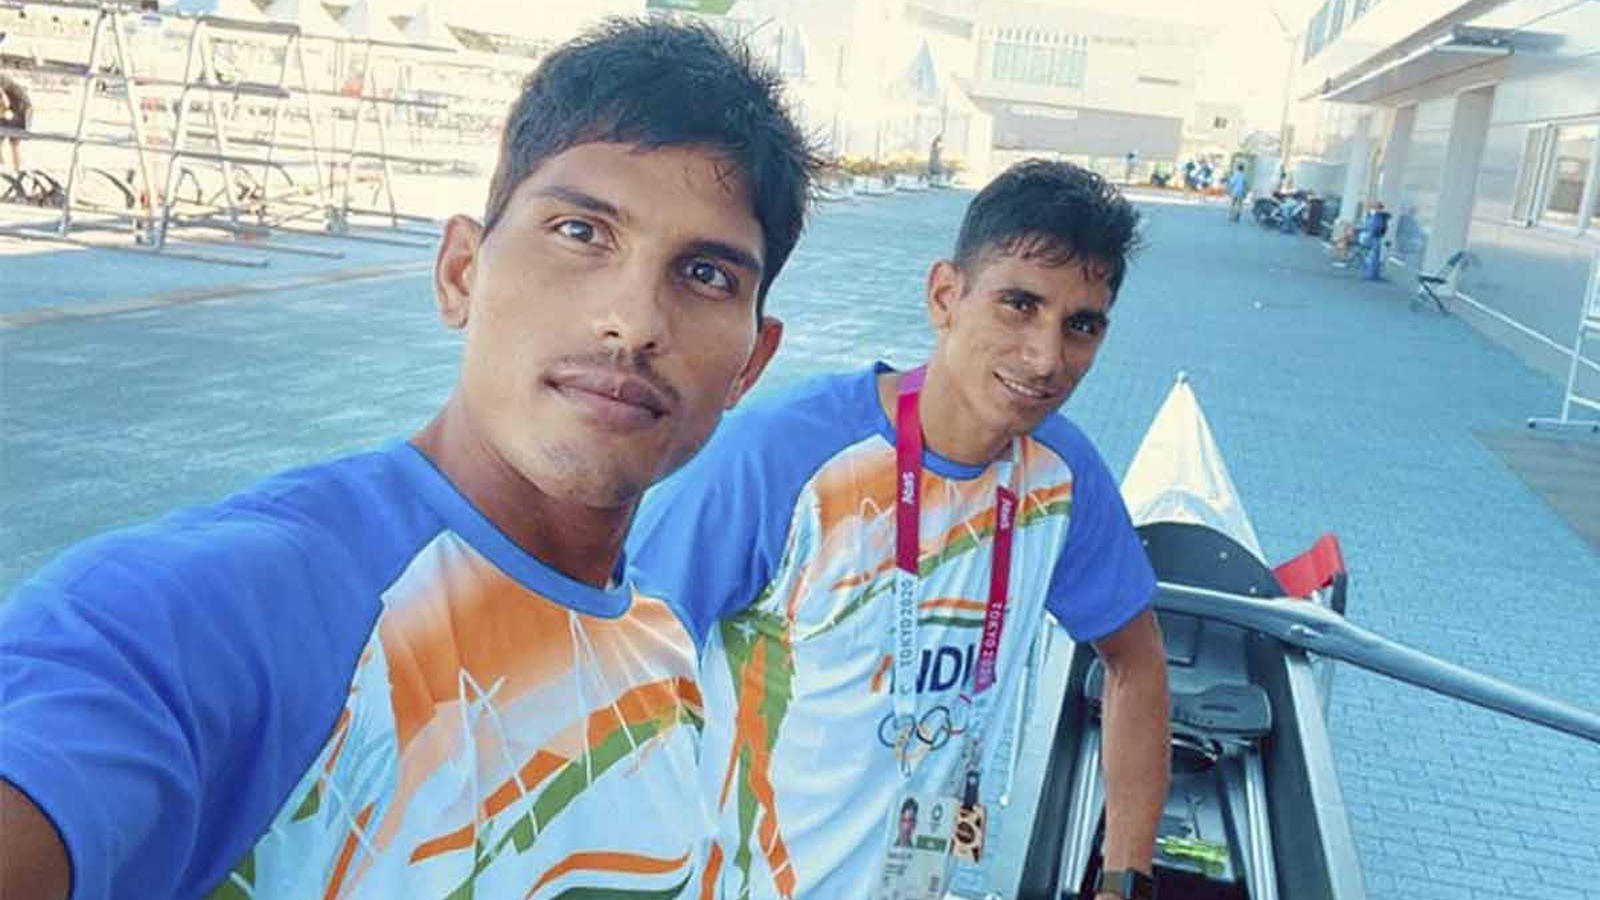 tokyo-olympics-arjun-and-arvind-finish-third-in-lightweight-double-sculls-repechage-qualify-for-semifinals